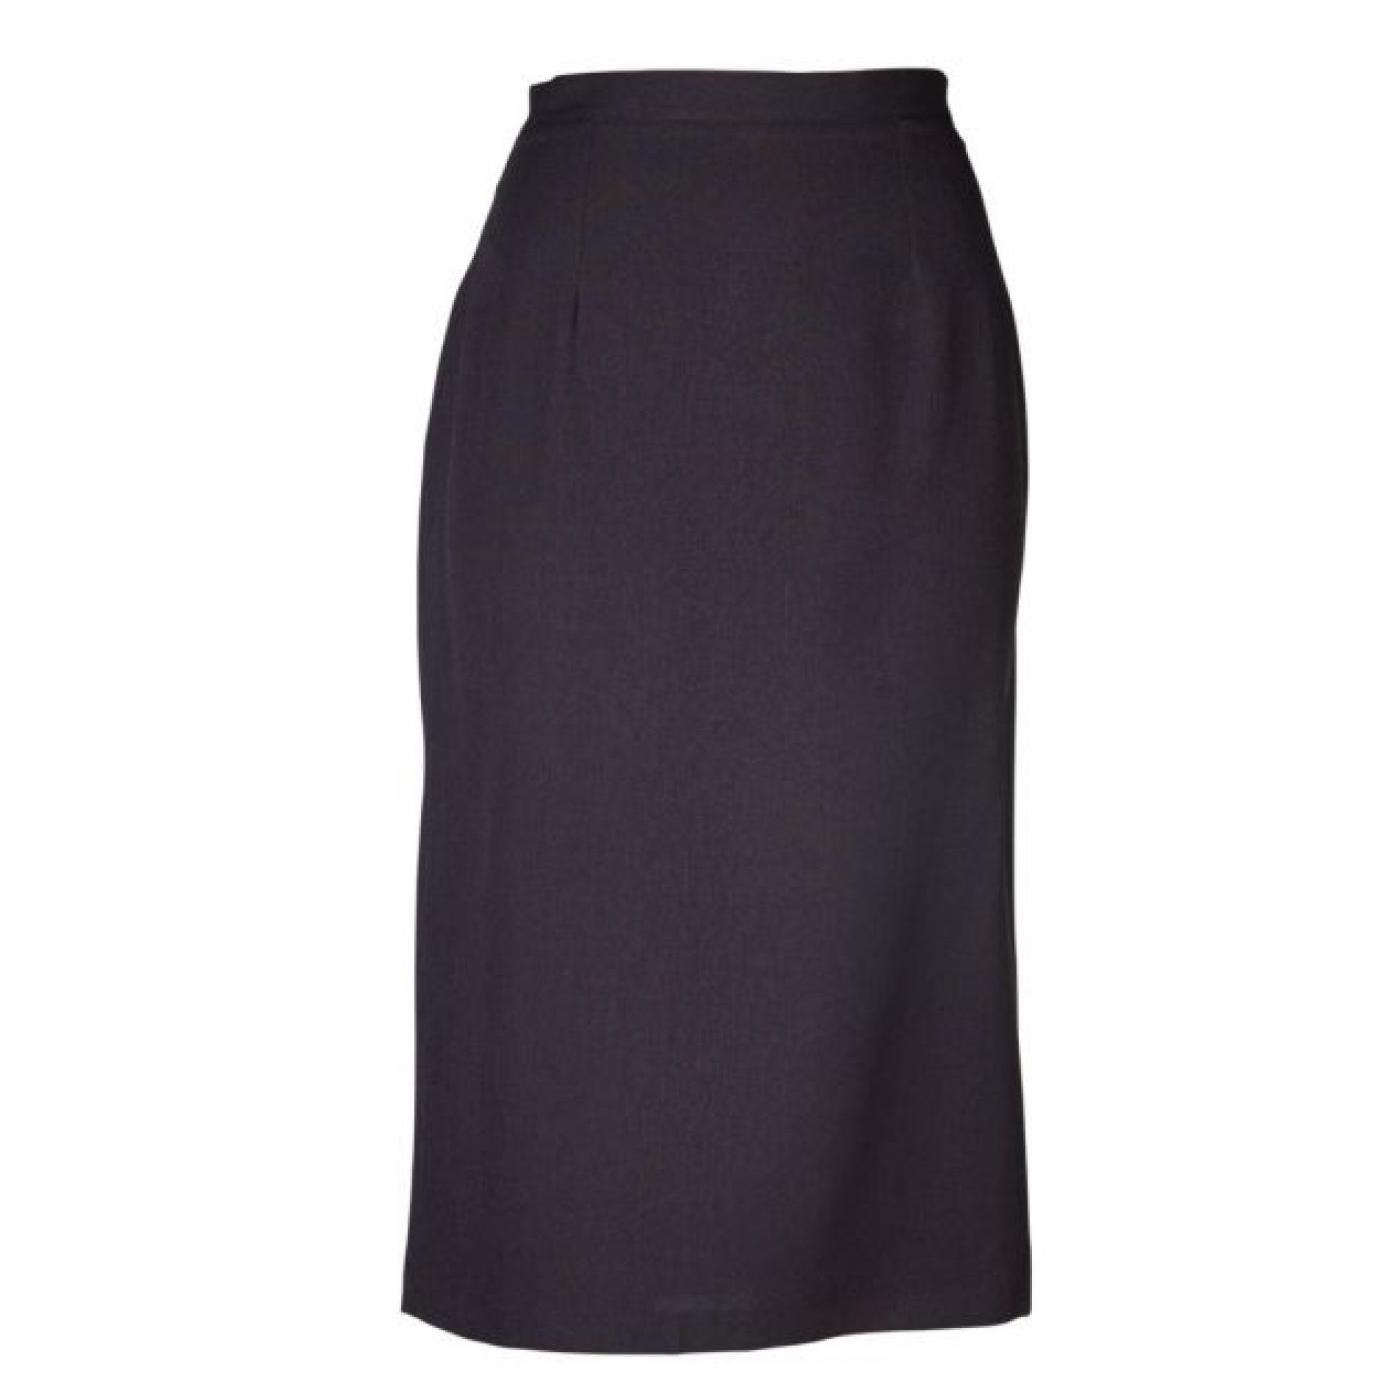 Claire Pencil Long Skirt - Cationic Charcoal